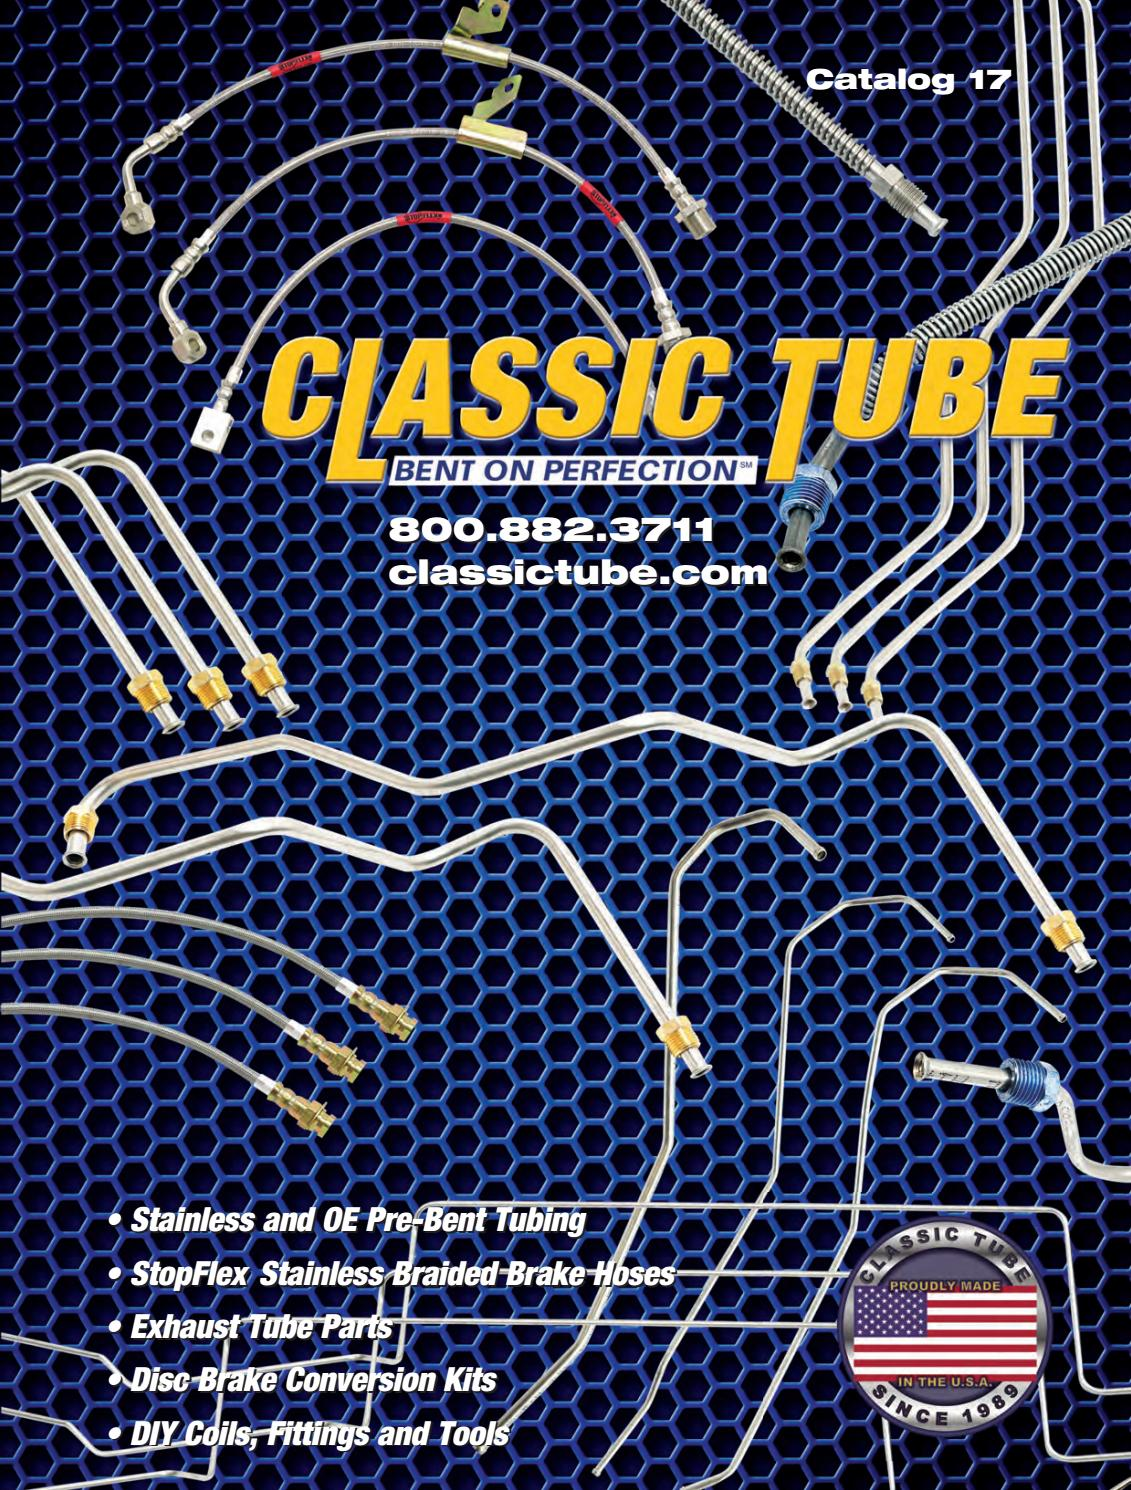 Classic tube catalog 17 by Classic Tube - issuu